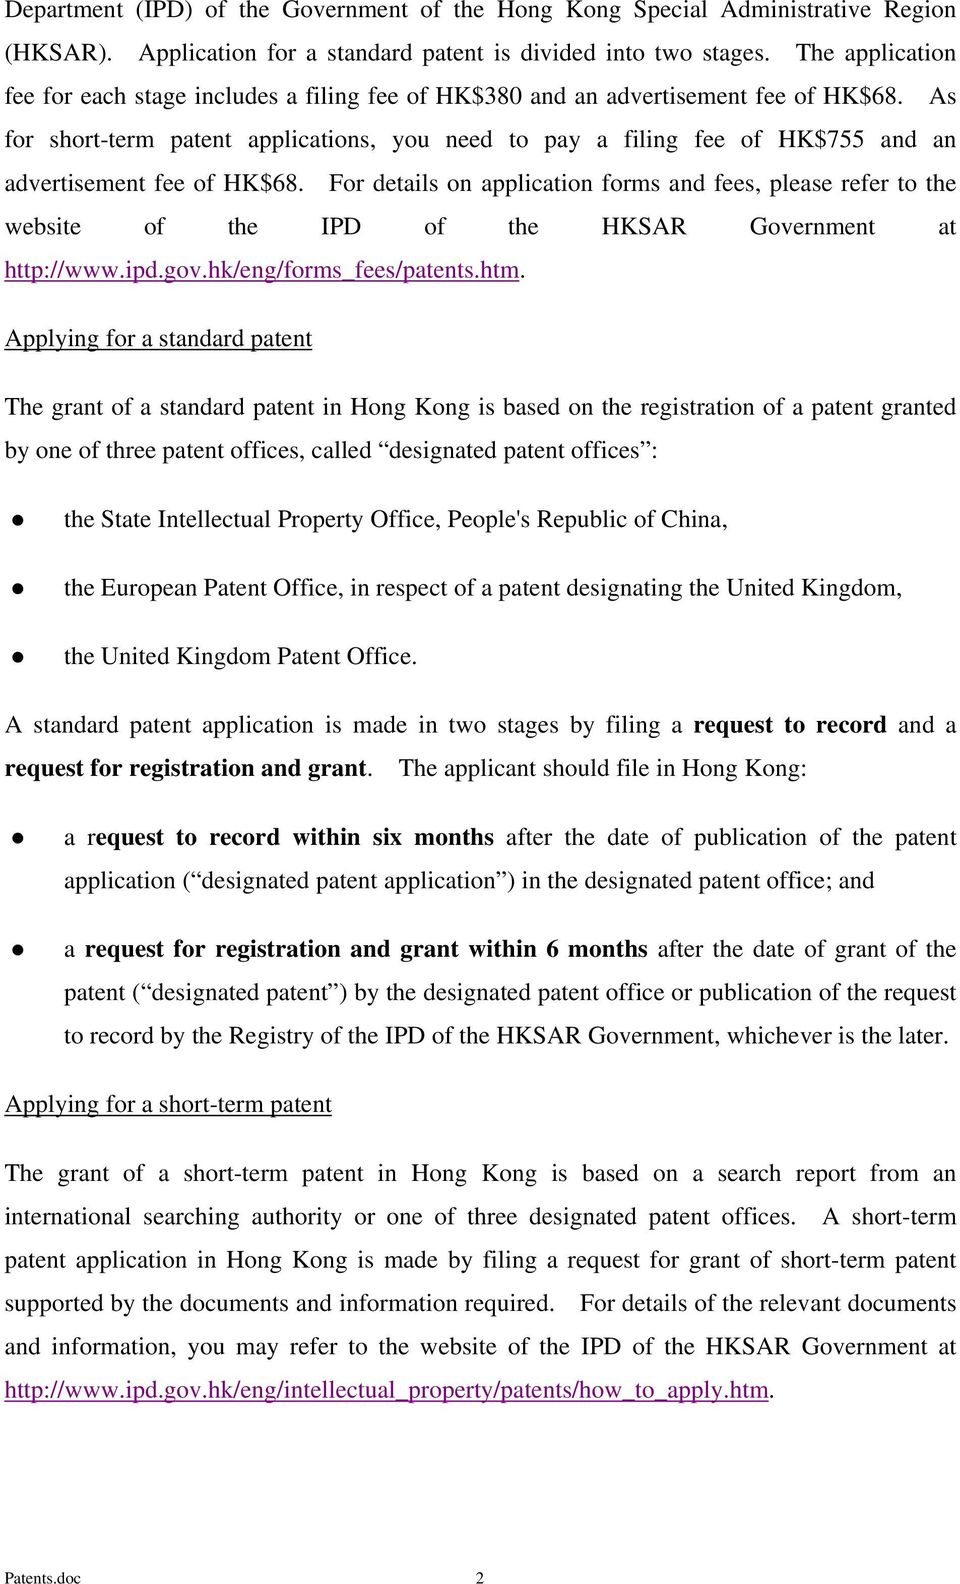 As for short-term patent applications, you need to pay a filing fee of HK$755 and an advertisement fee of HK$68.